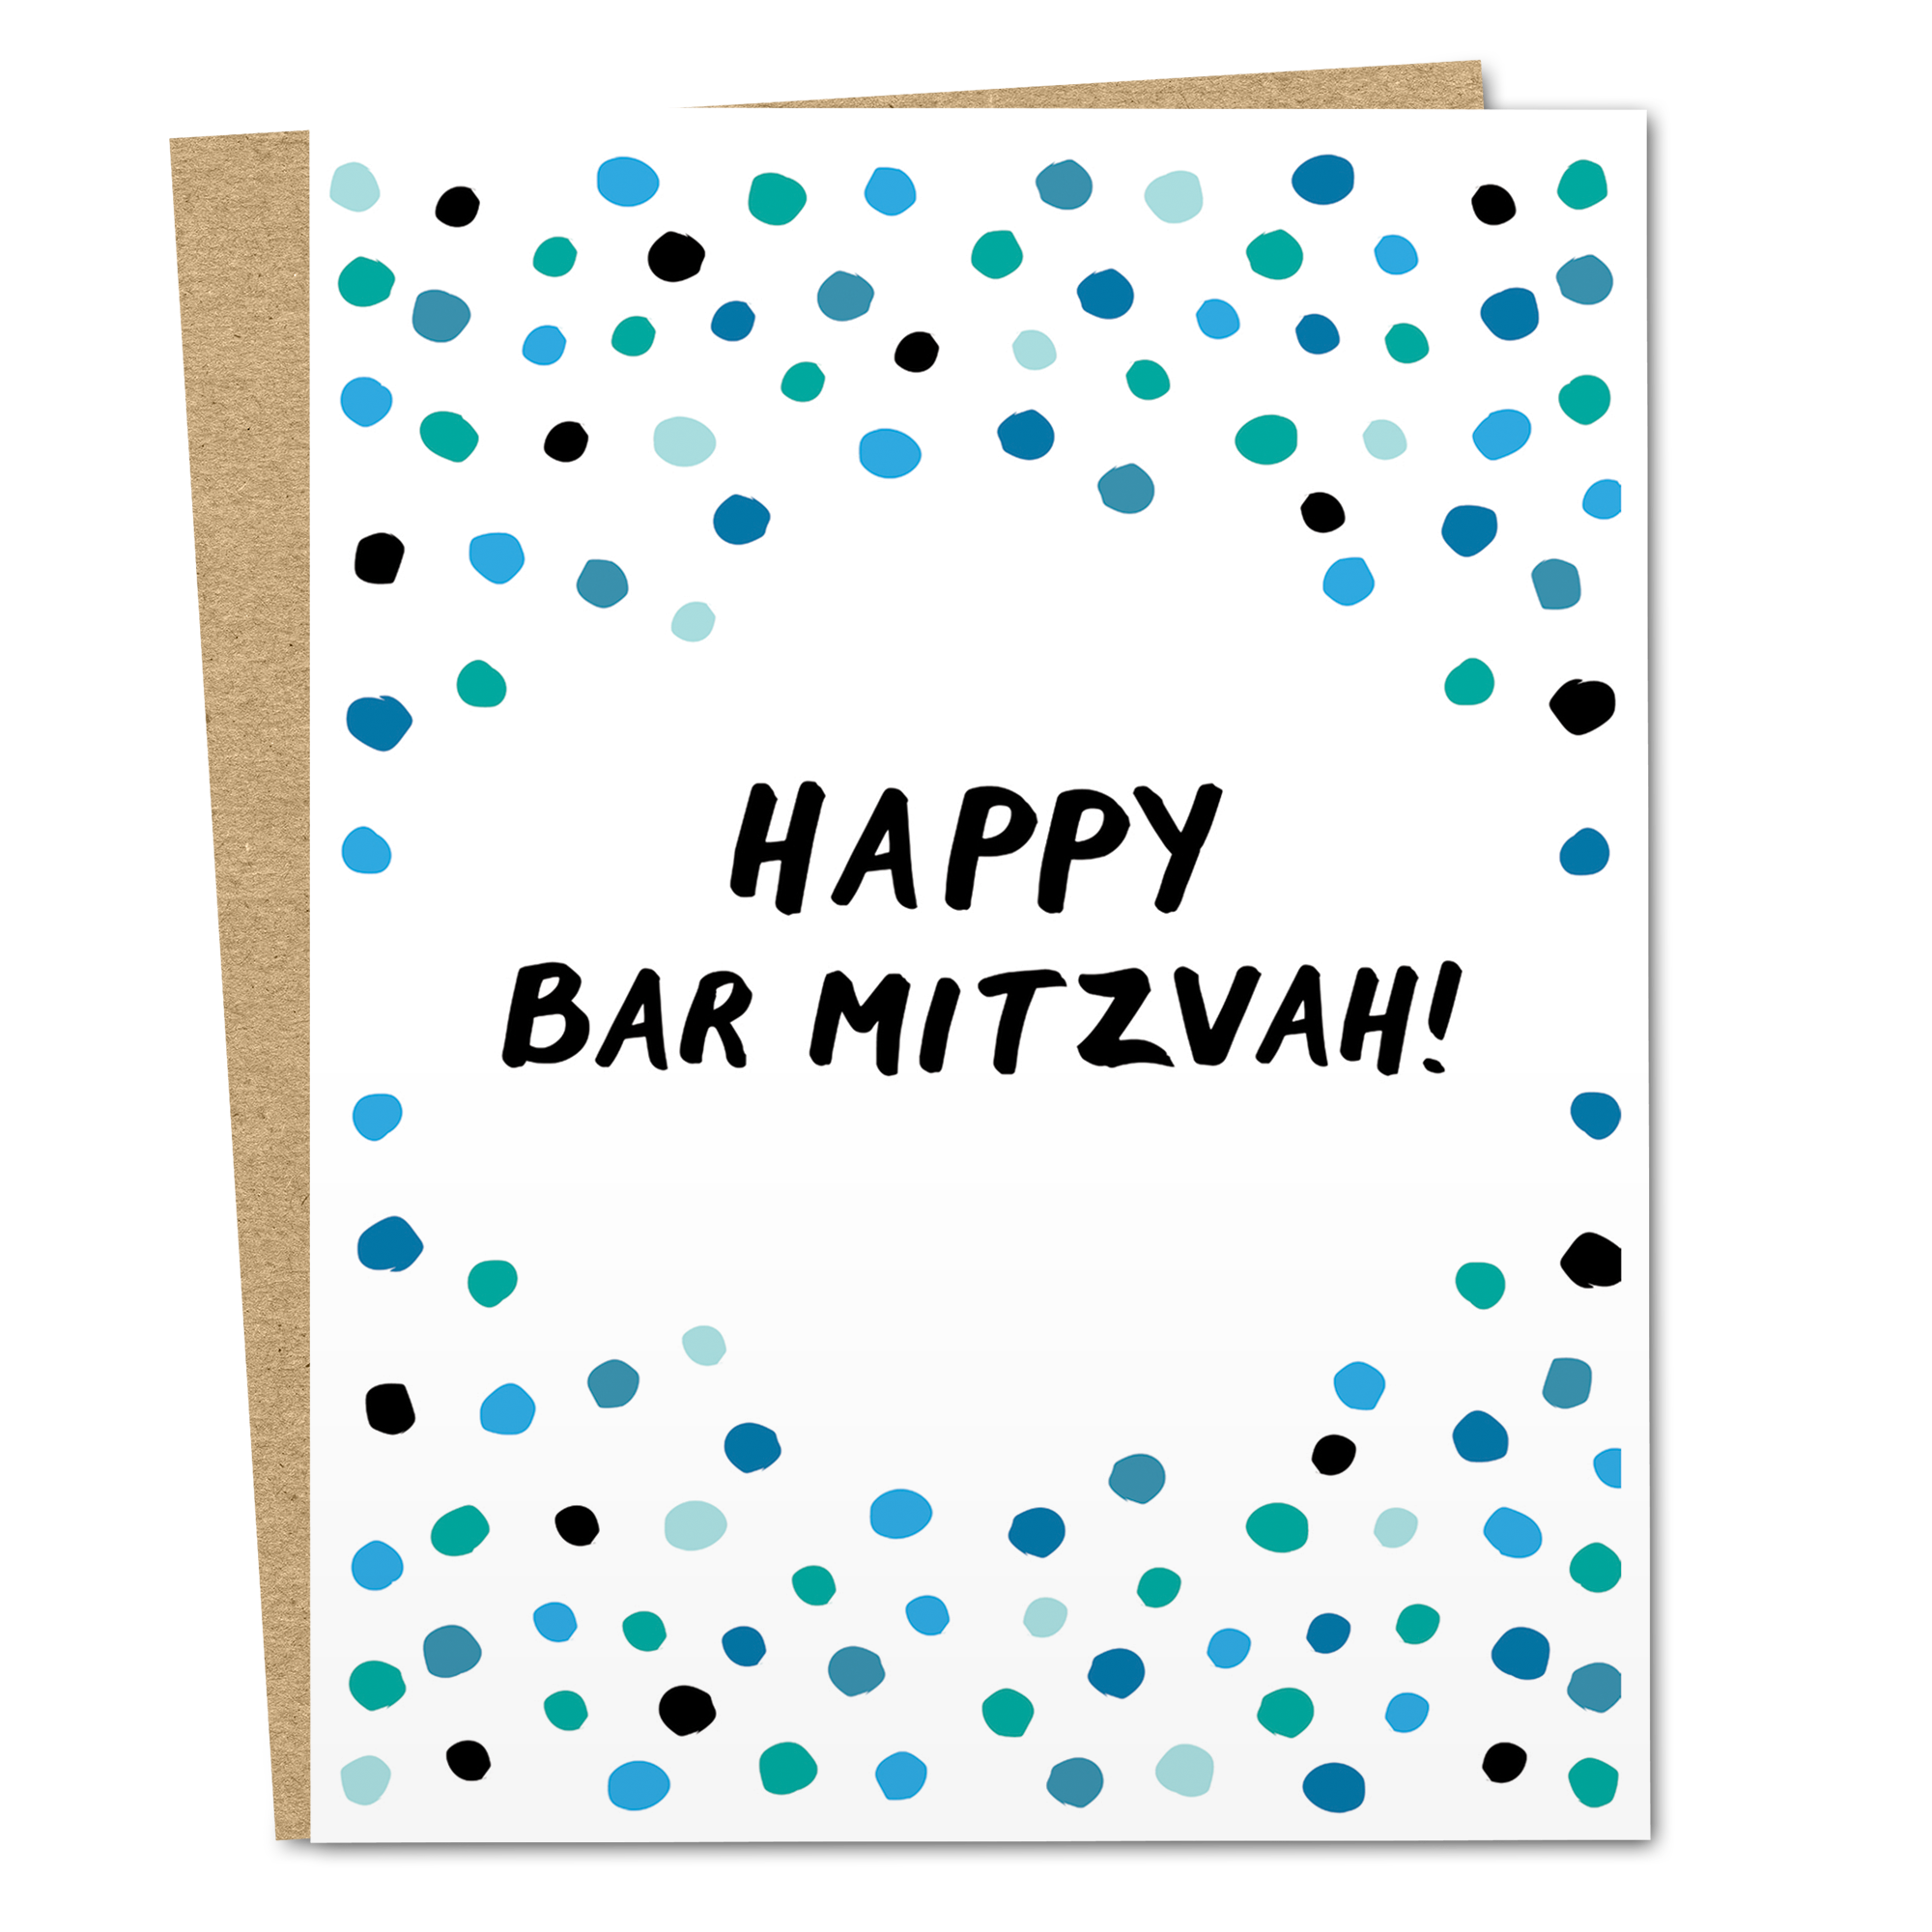 Happy Bar Mitzvah - The Good Snail